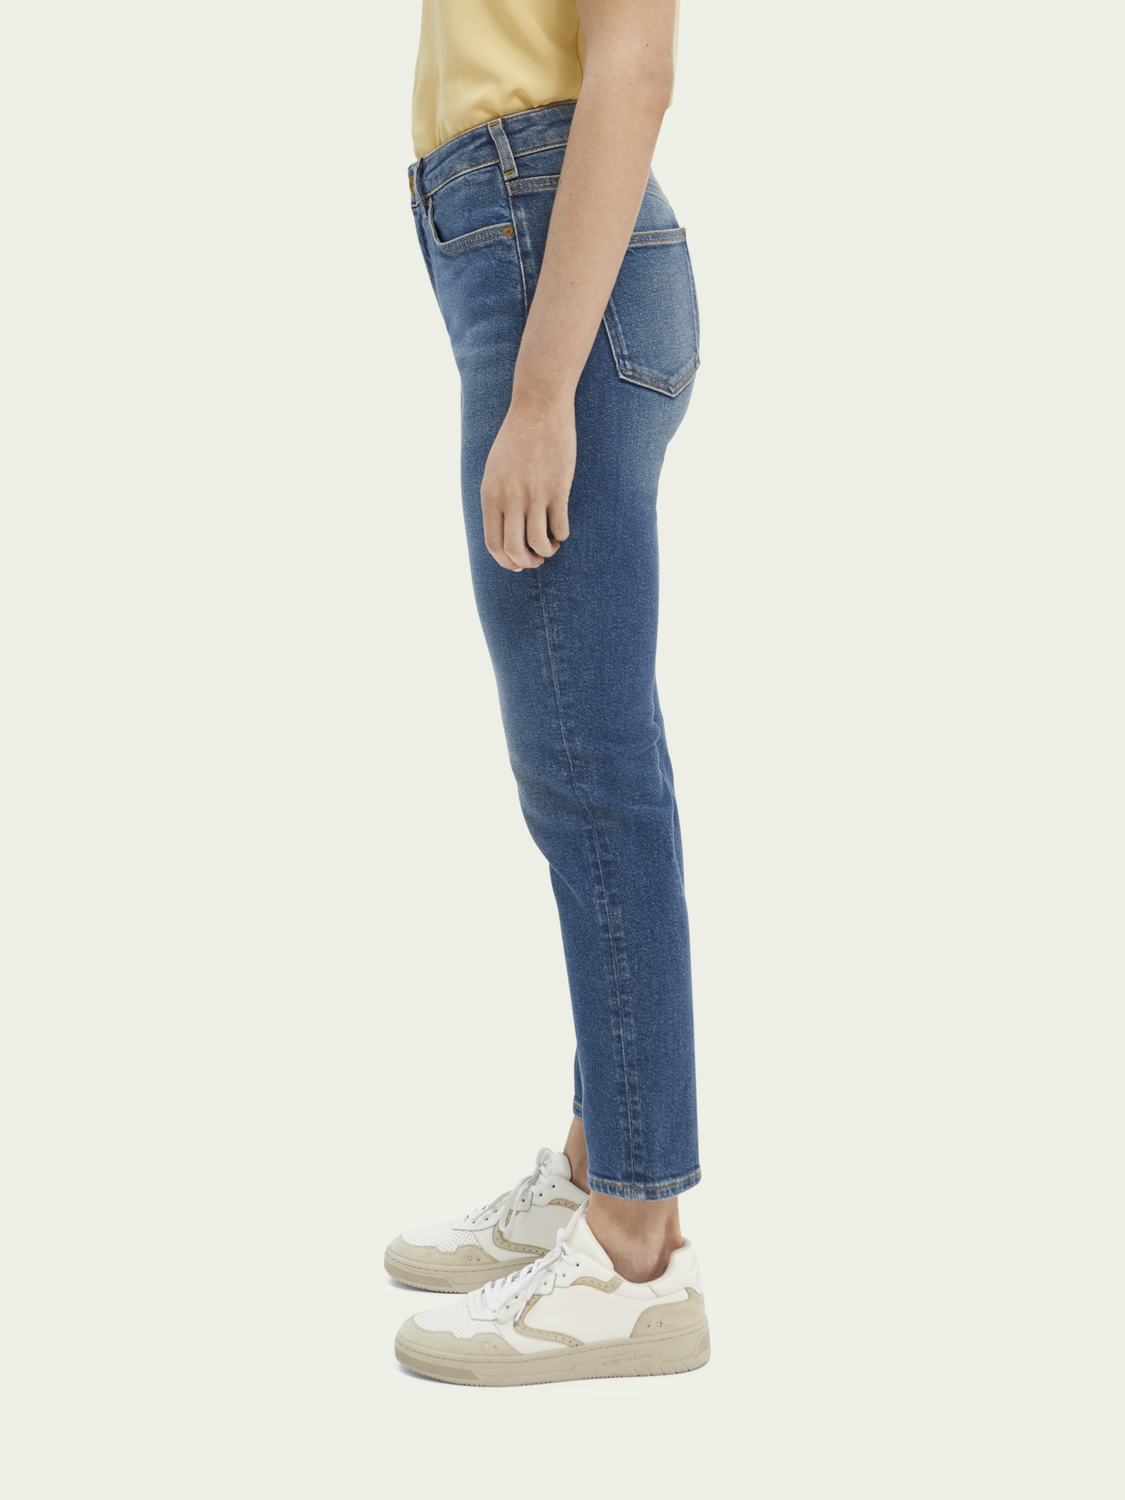 Dames High Five high-rise jeans met smalle pijpen – Sea Washed